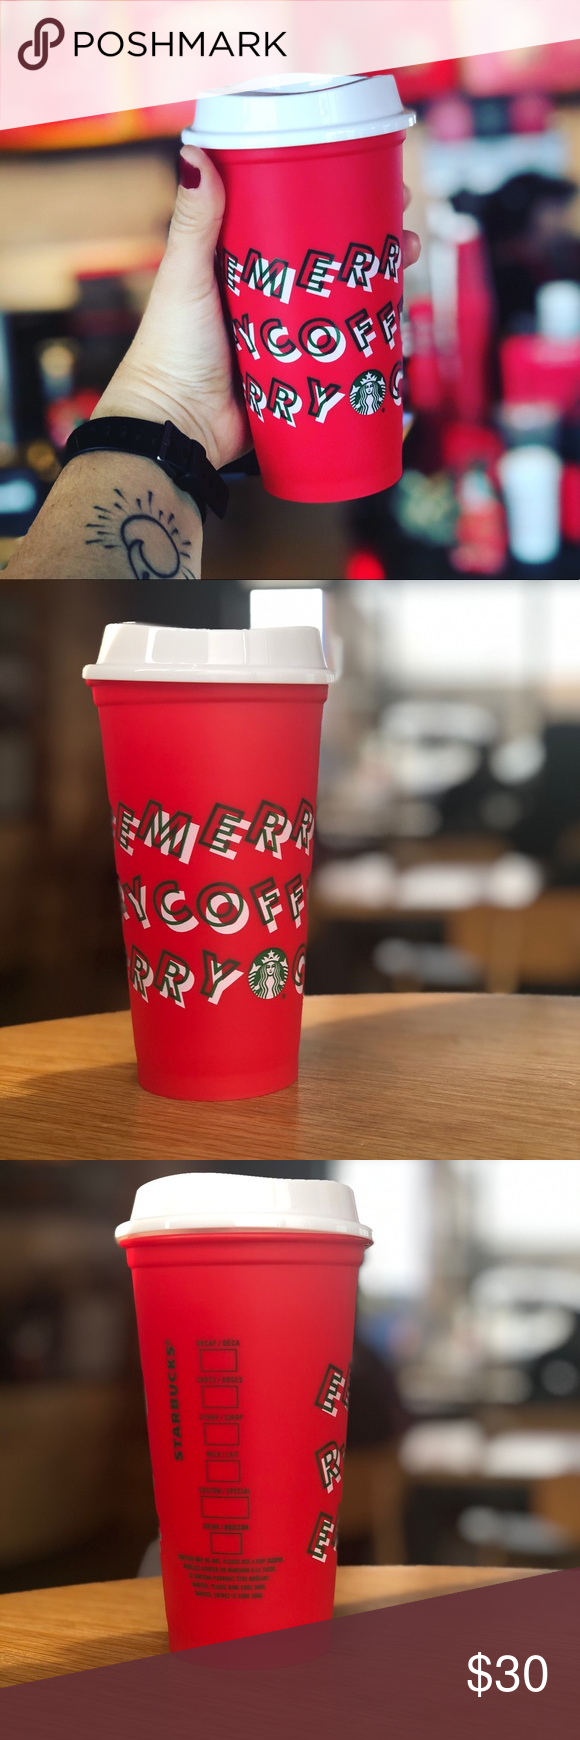 """Starbucks Holiday reusable Red cup +drink discount """"Merry"""